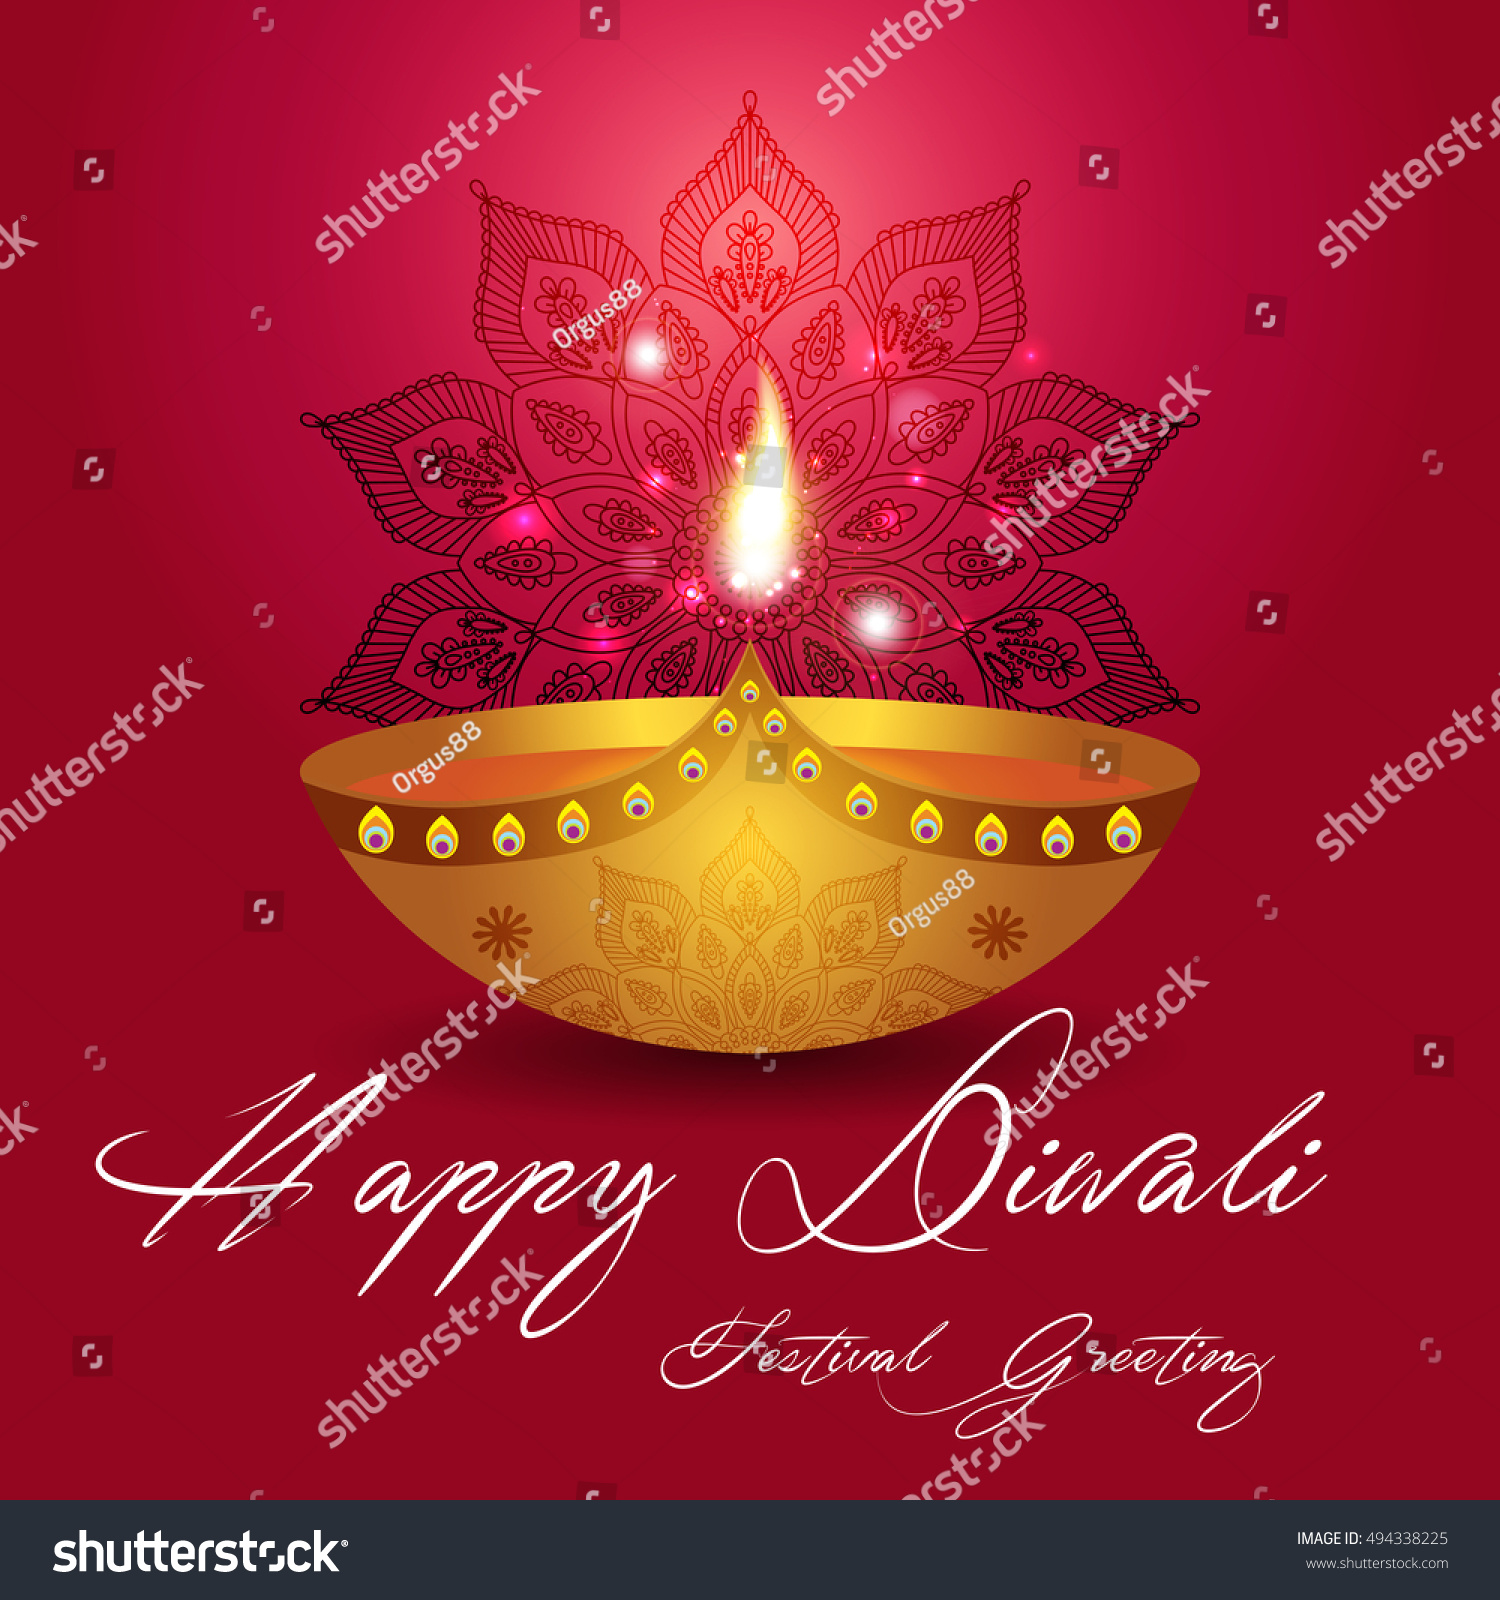 Beautiful greeting card hindu community festival stock vector beautiful greeting card for hindu community festival diwali happy diwali traditional indian festival colorful kristyandbryce Images